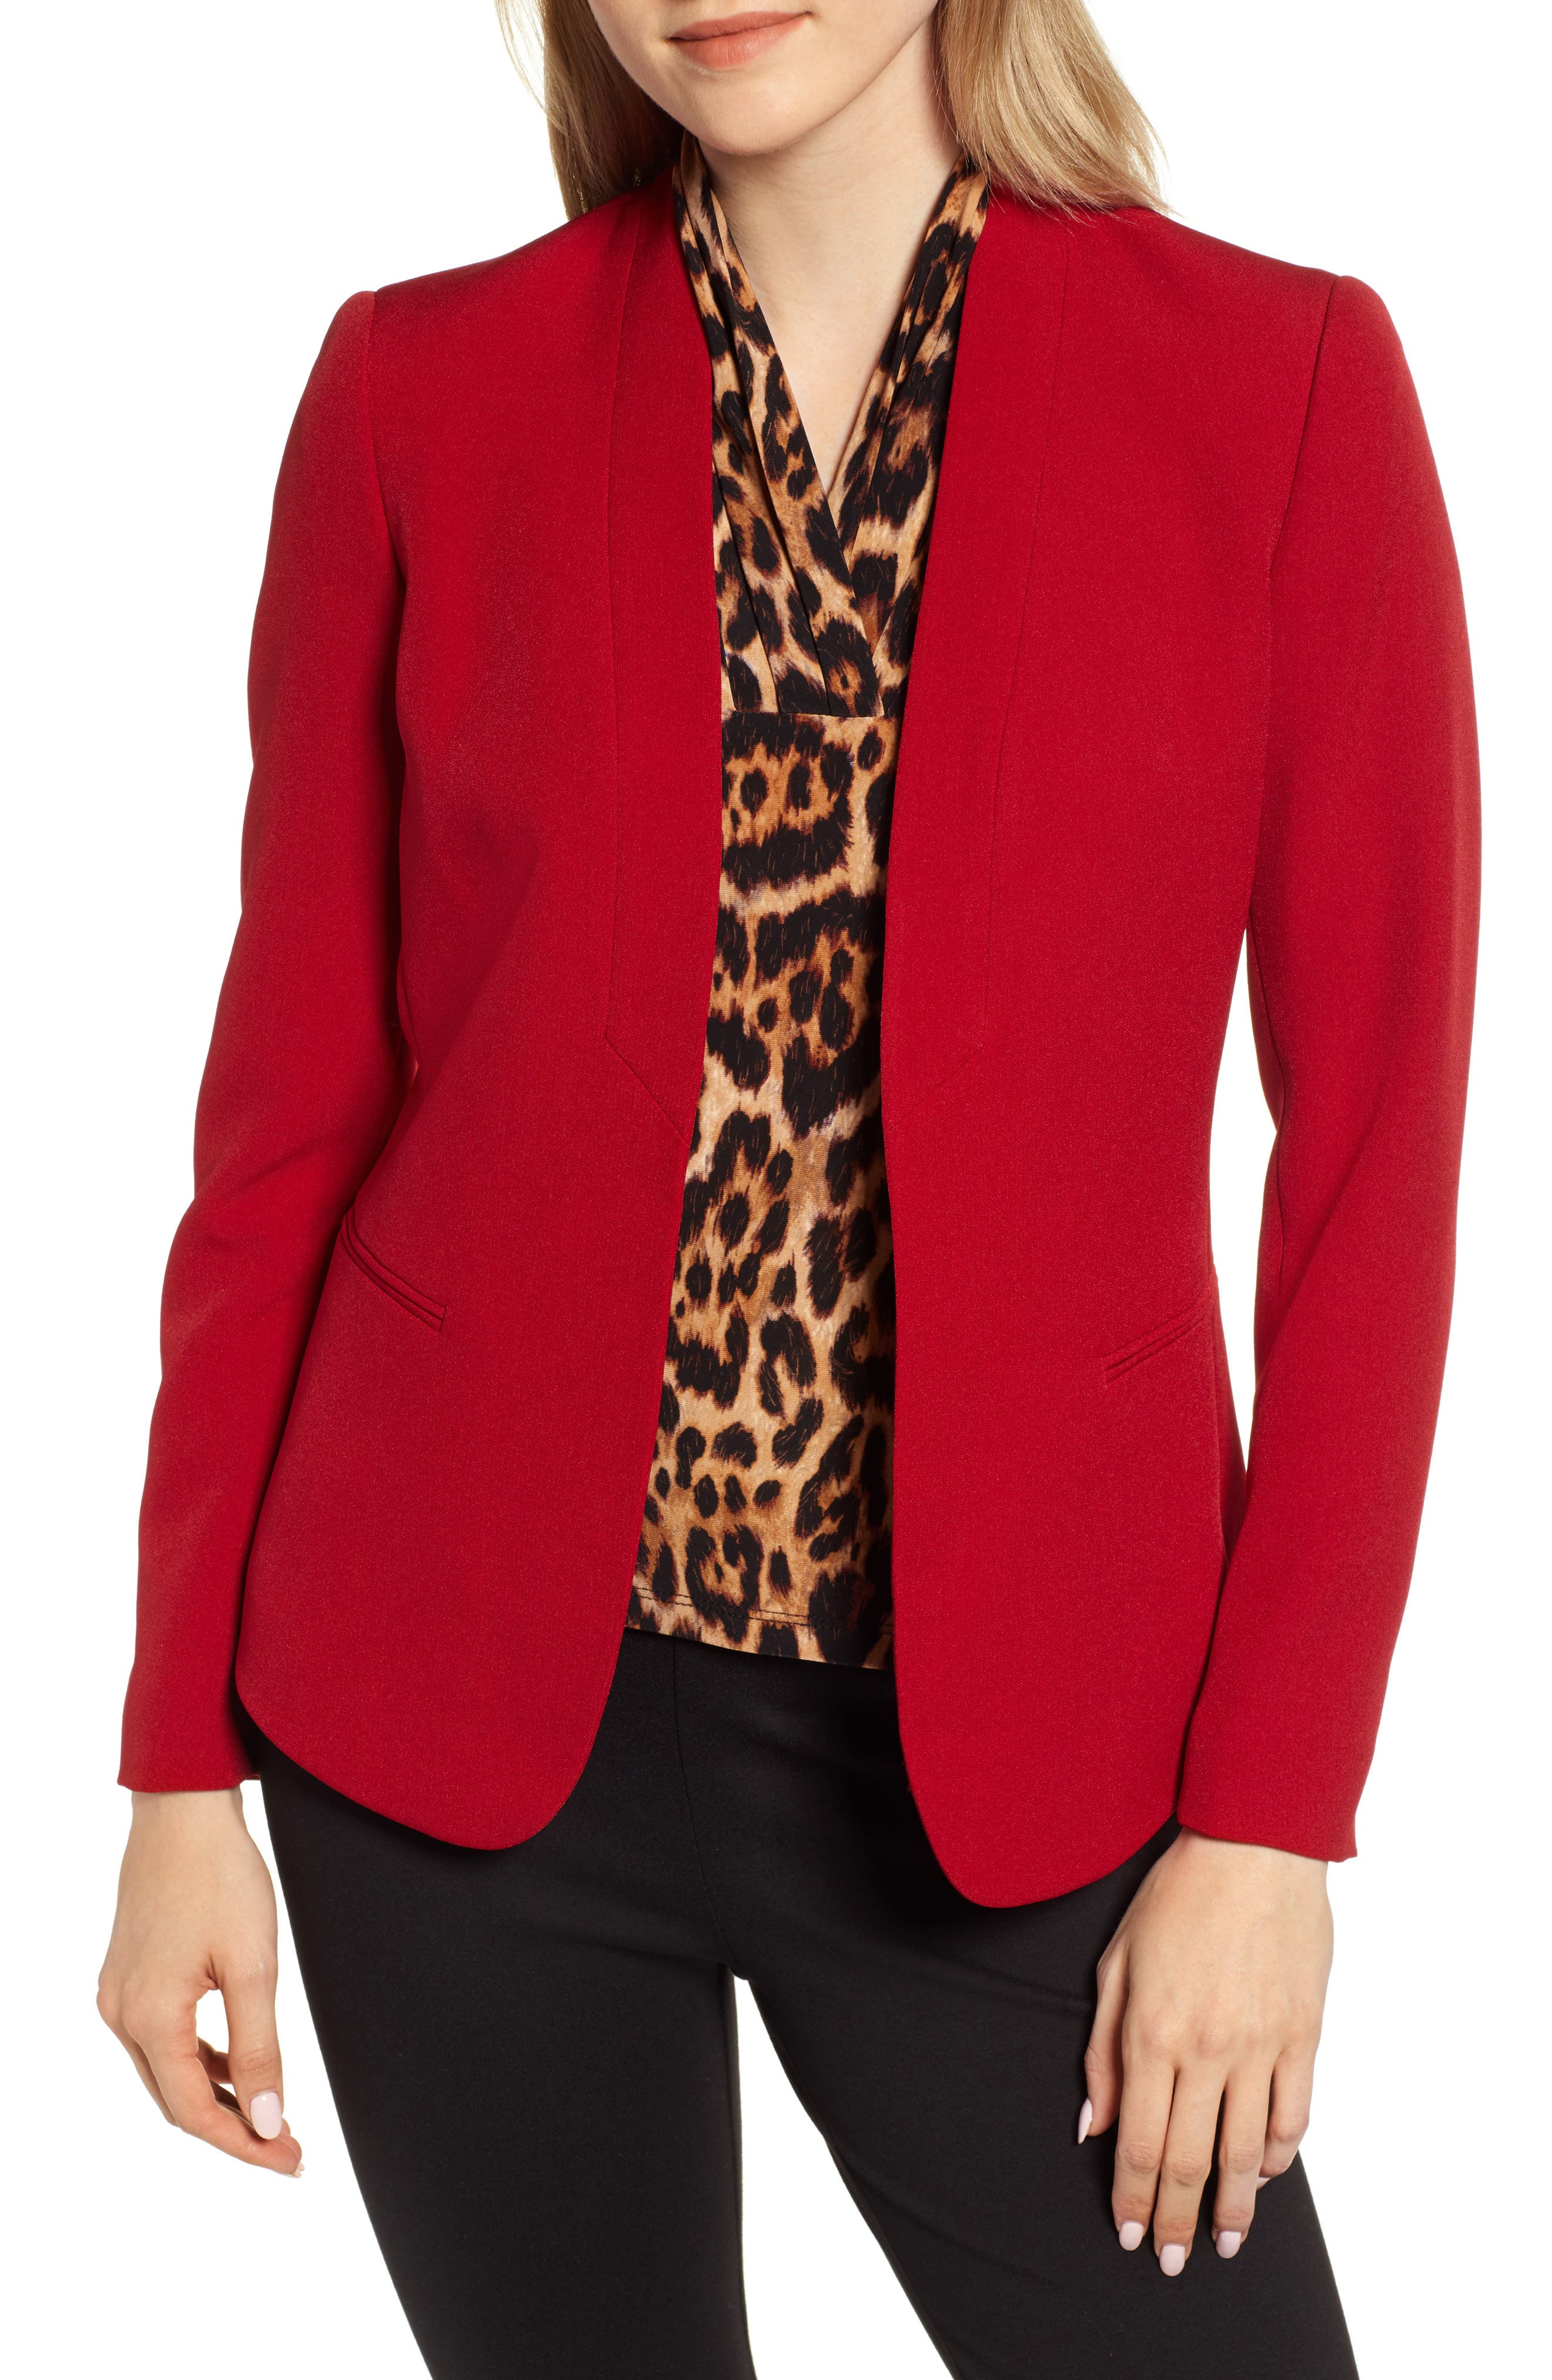 ANNE KLEIN Crepe Jacket in Titian Red